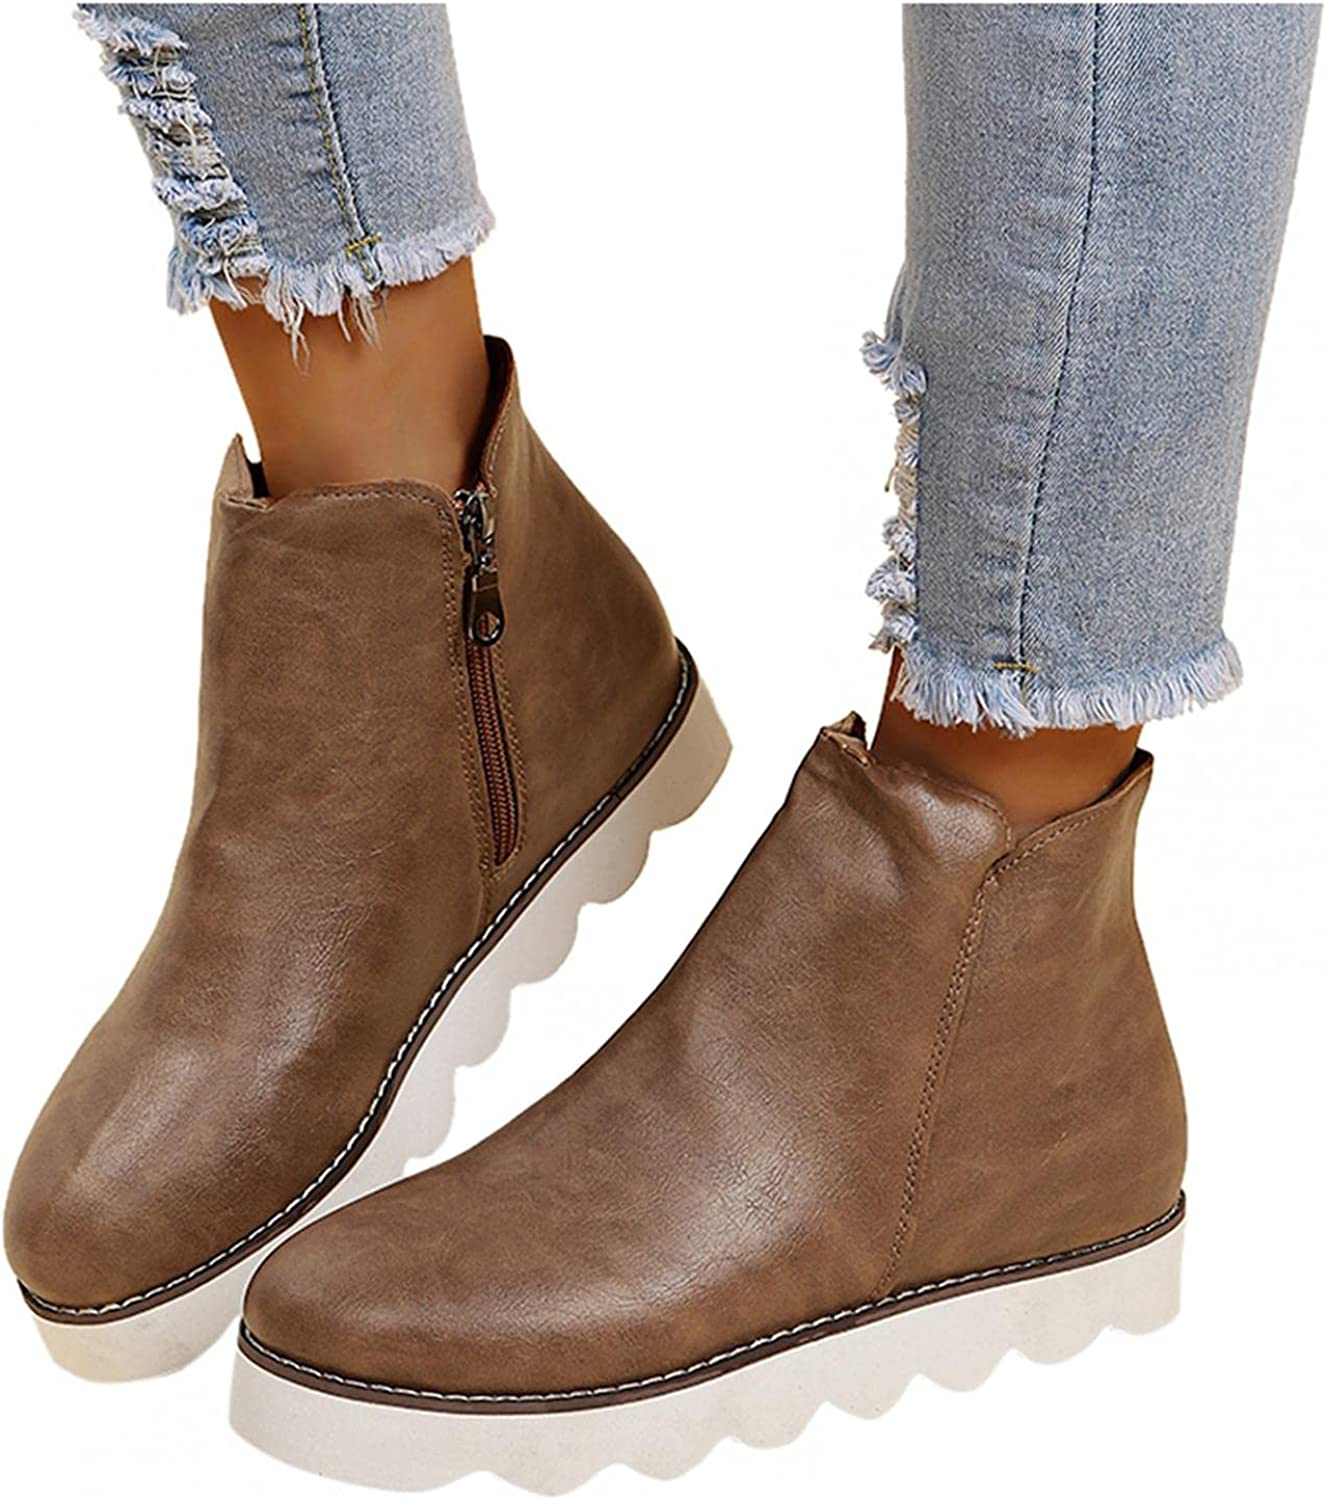 Niceast Boots for Women, Leopard Casual Slip On Flat Boots Breathable Autumn Outdoor Cowboy Lightweight Boots